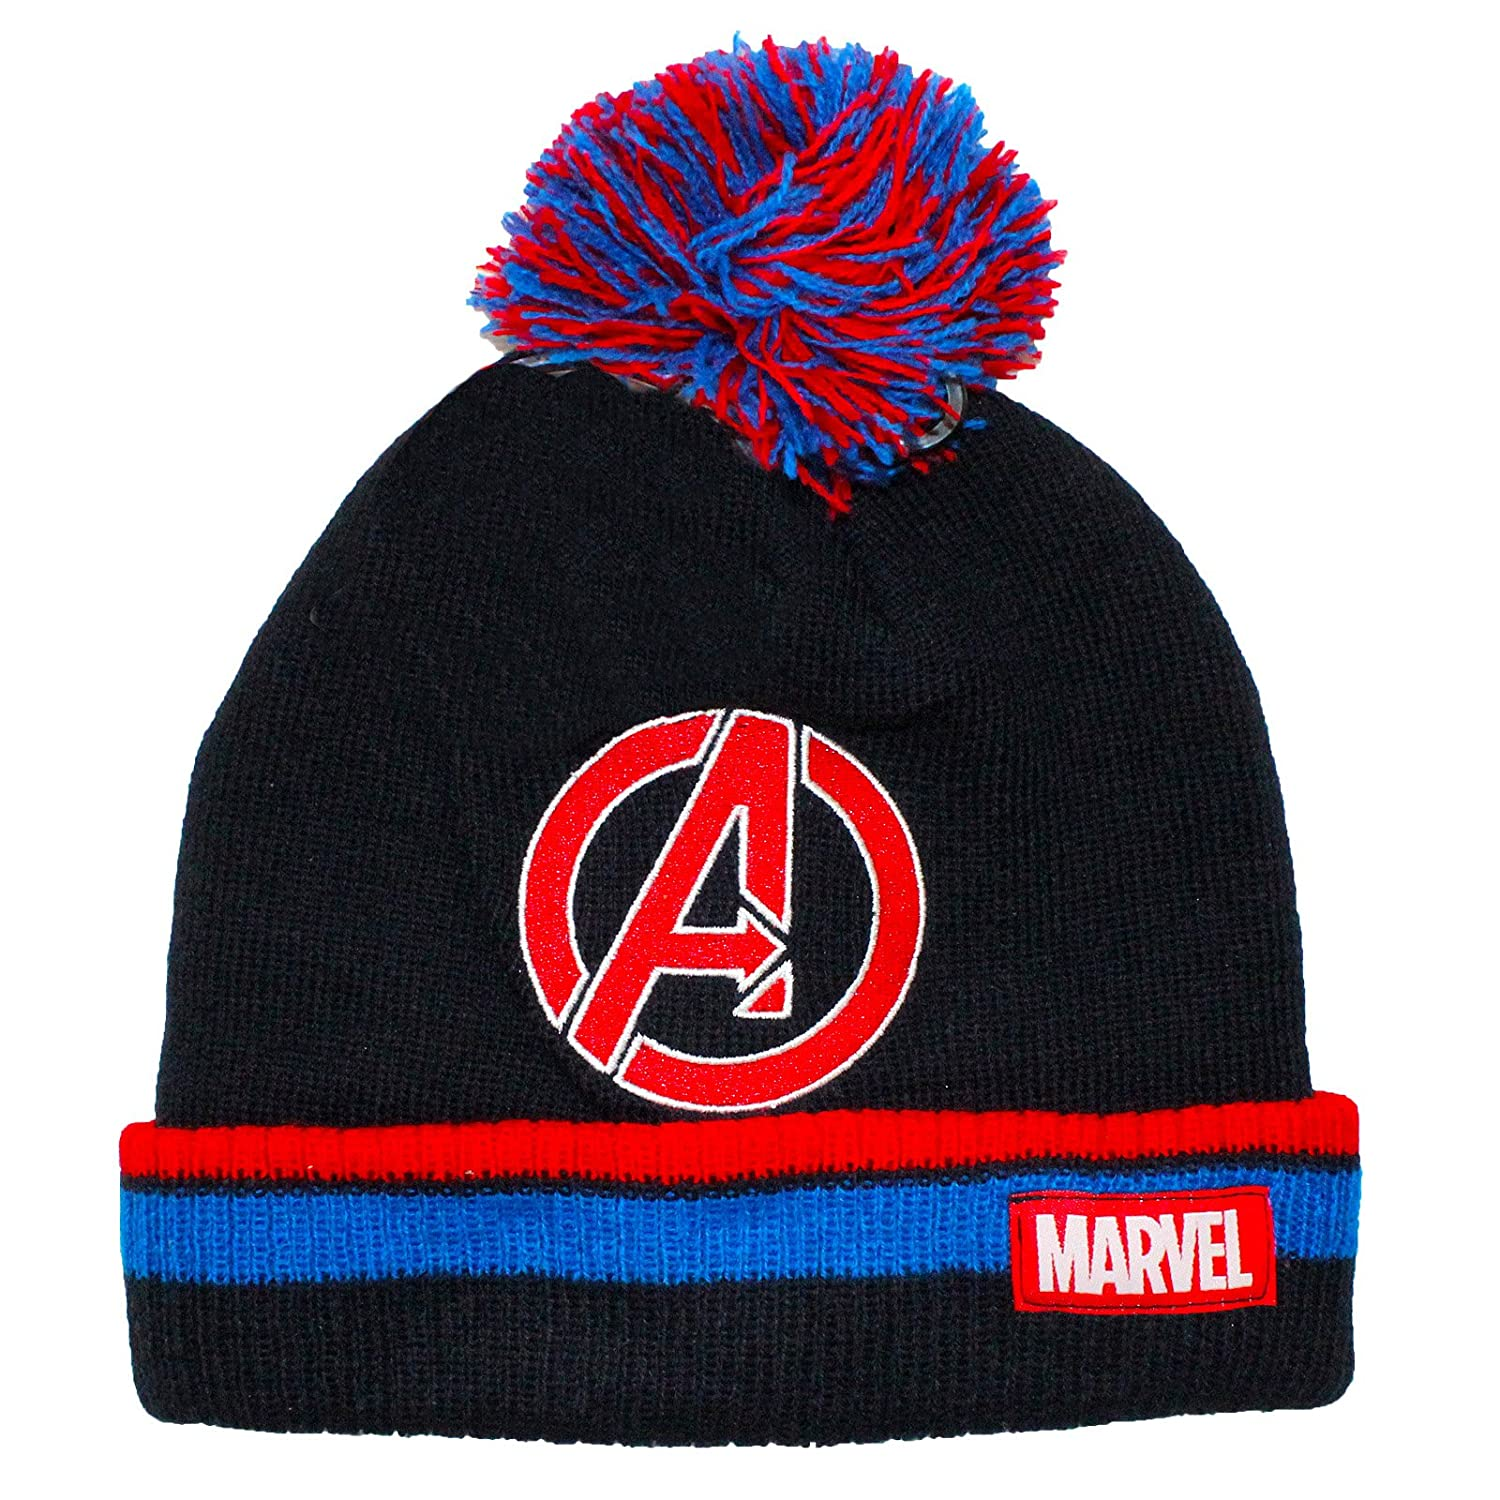 Marvel Official Licensed Adults Mens Avengers Assemble Winter Bobble Beanie  Hat One Size A Symbol Design  Amazon.co.uk  Clothing 205d16448eb